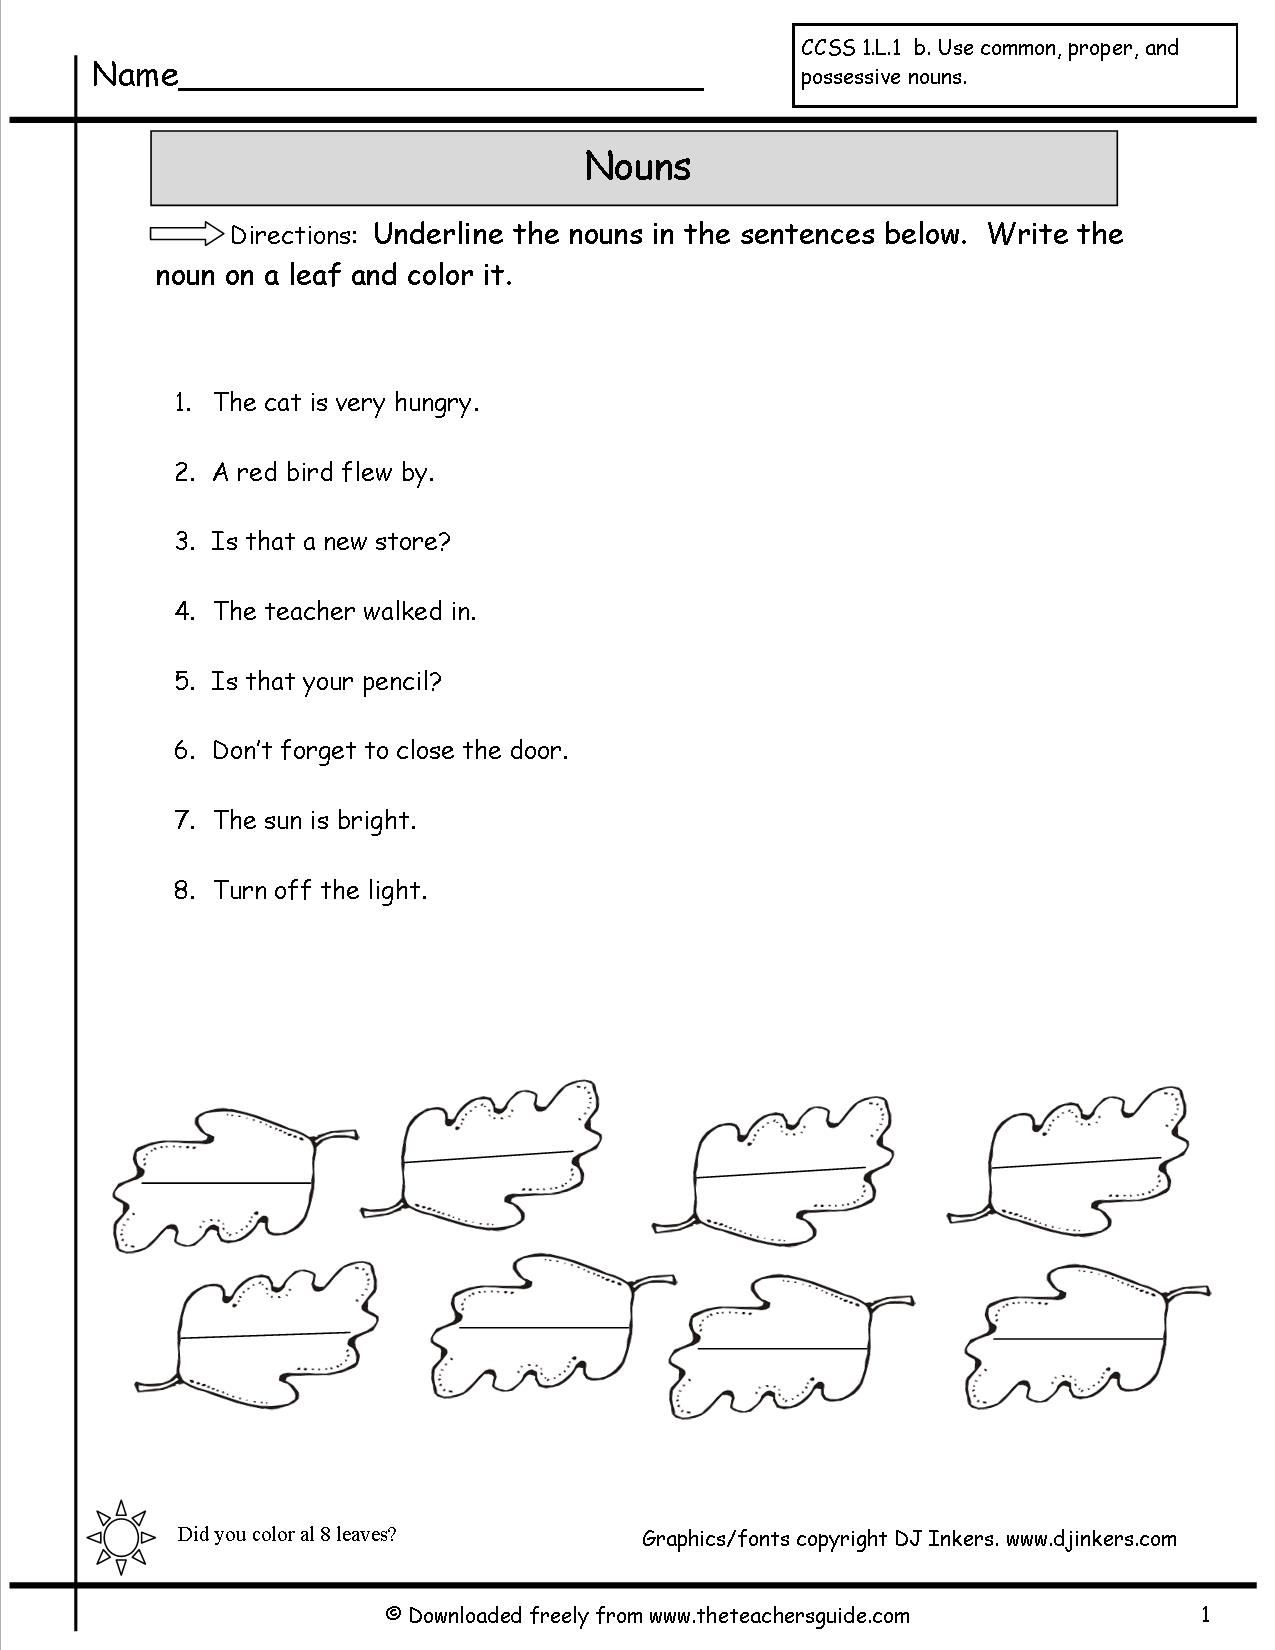 14 Best Images Of Identifying Nouns Worksheet